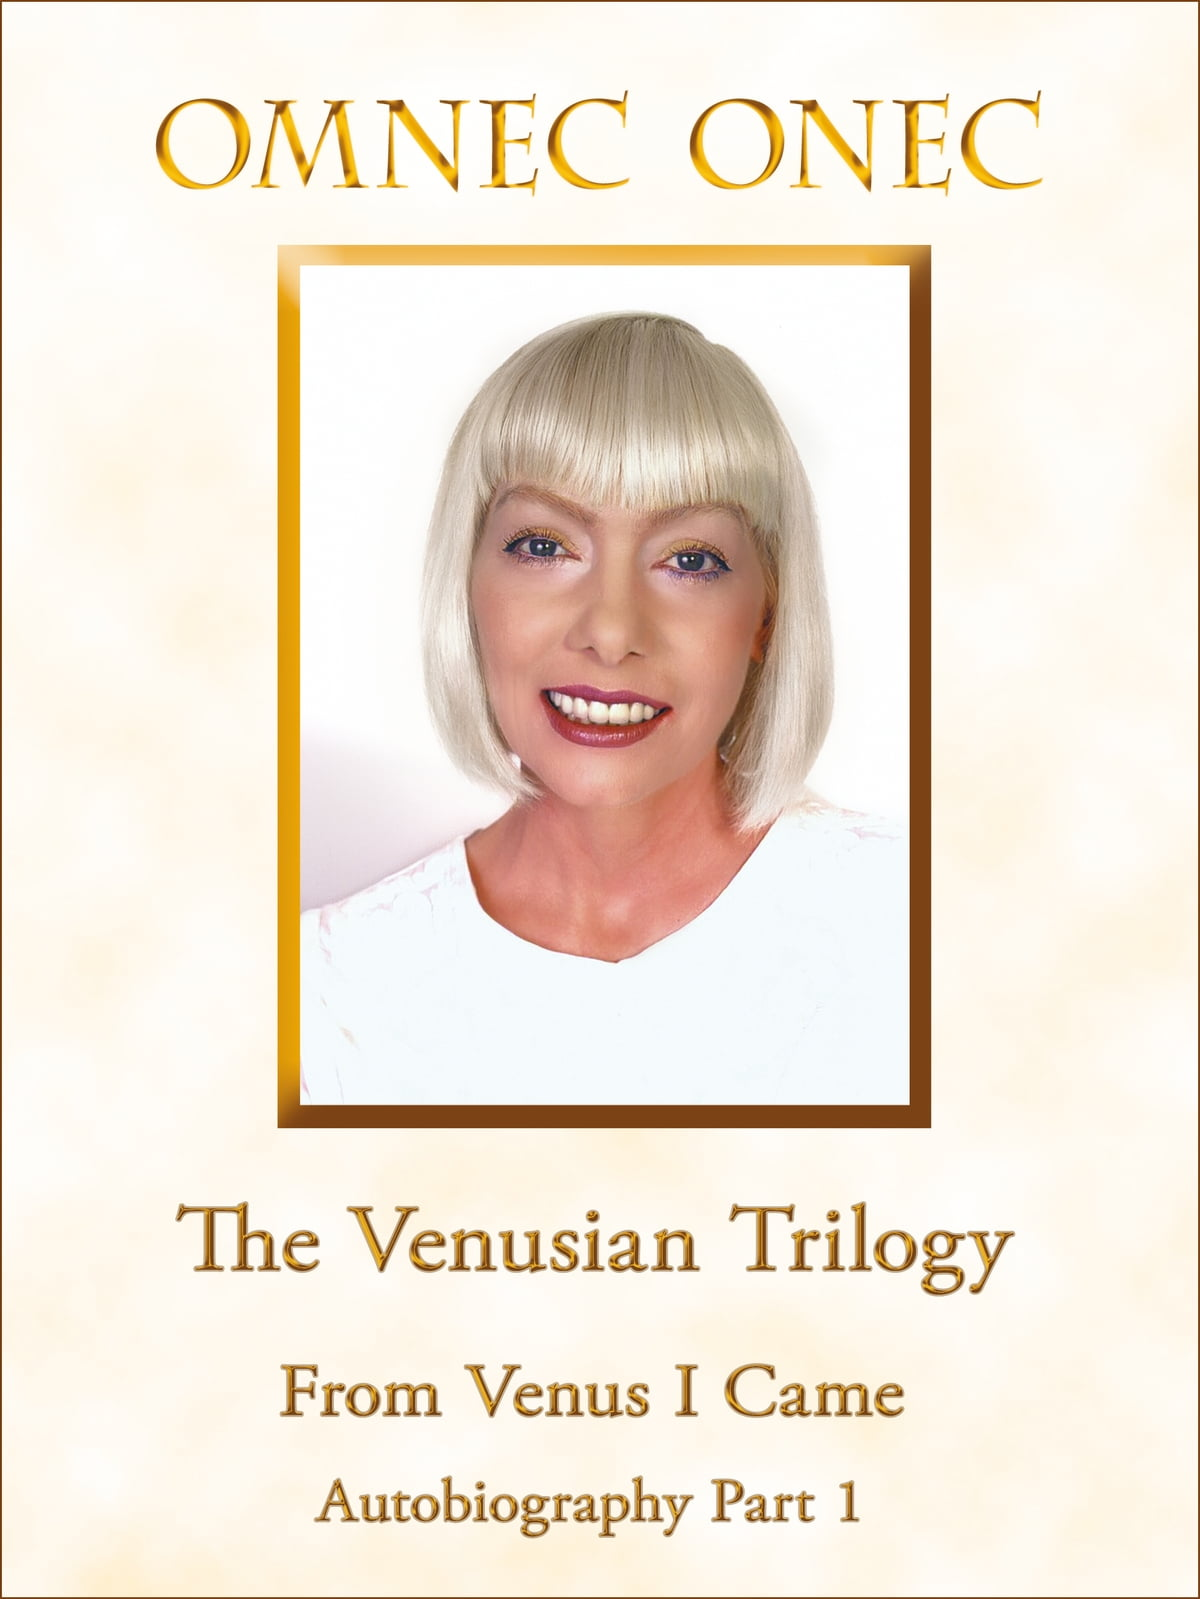 The Venusian Trilogy / From Venus I Came ebook by Omnec Onec - Rakuten Kobo